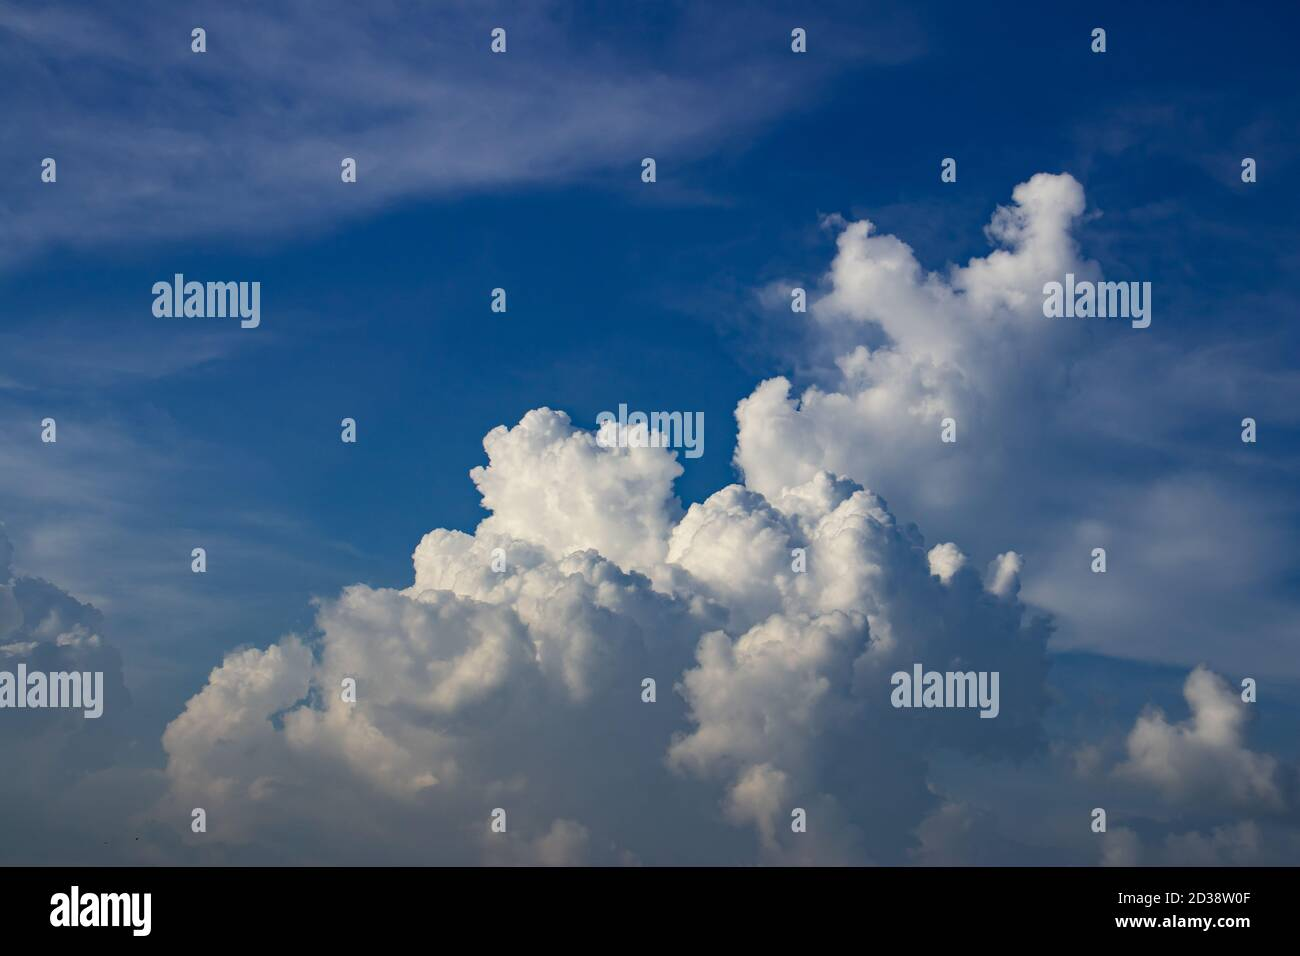 Sunny day in blue sky with nice white clouds like a monsters Stock Photo